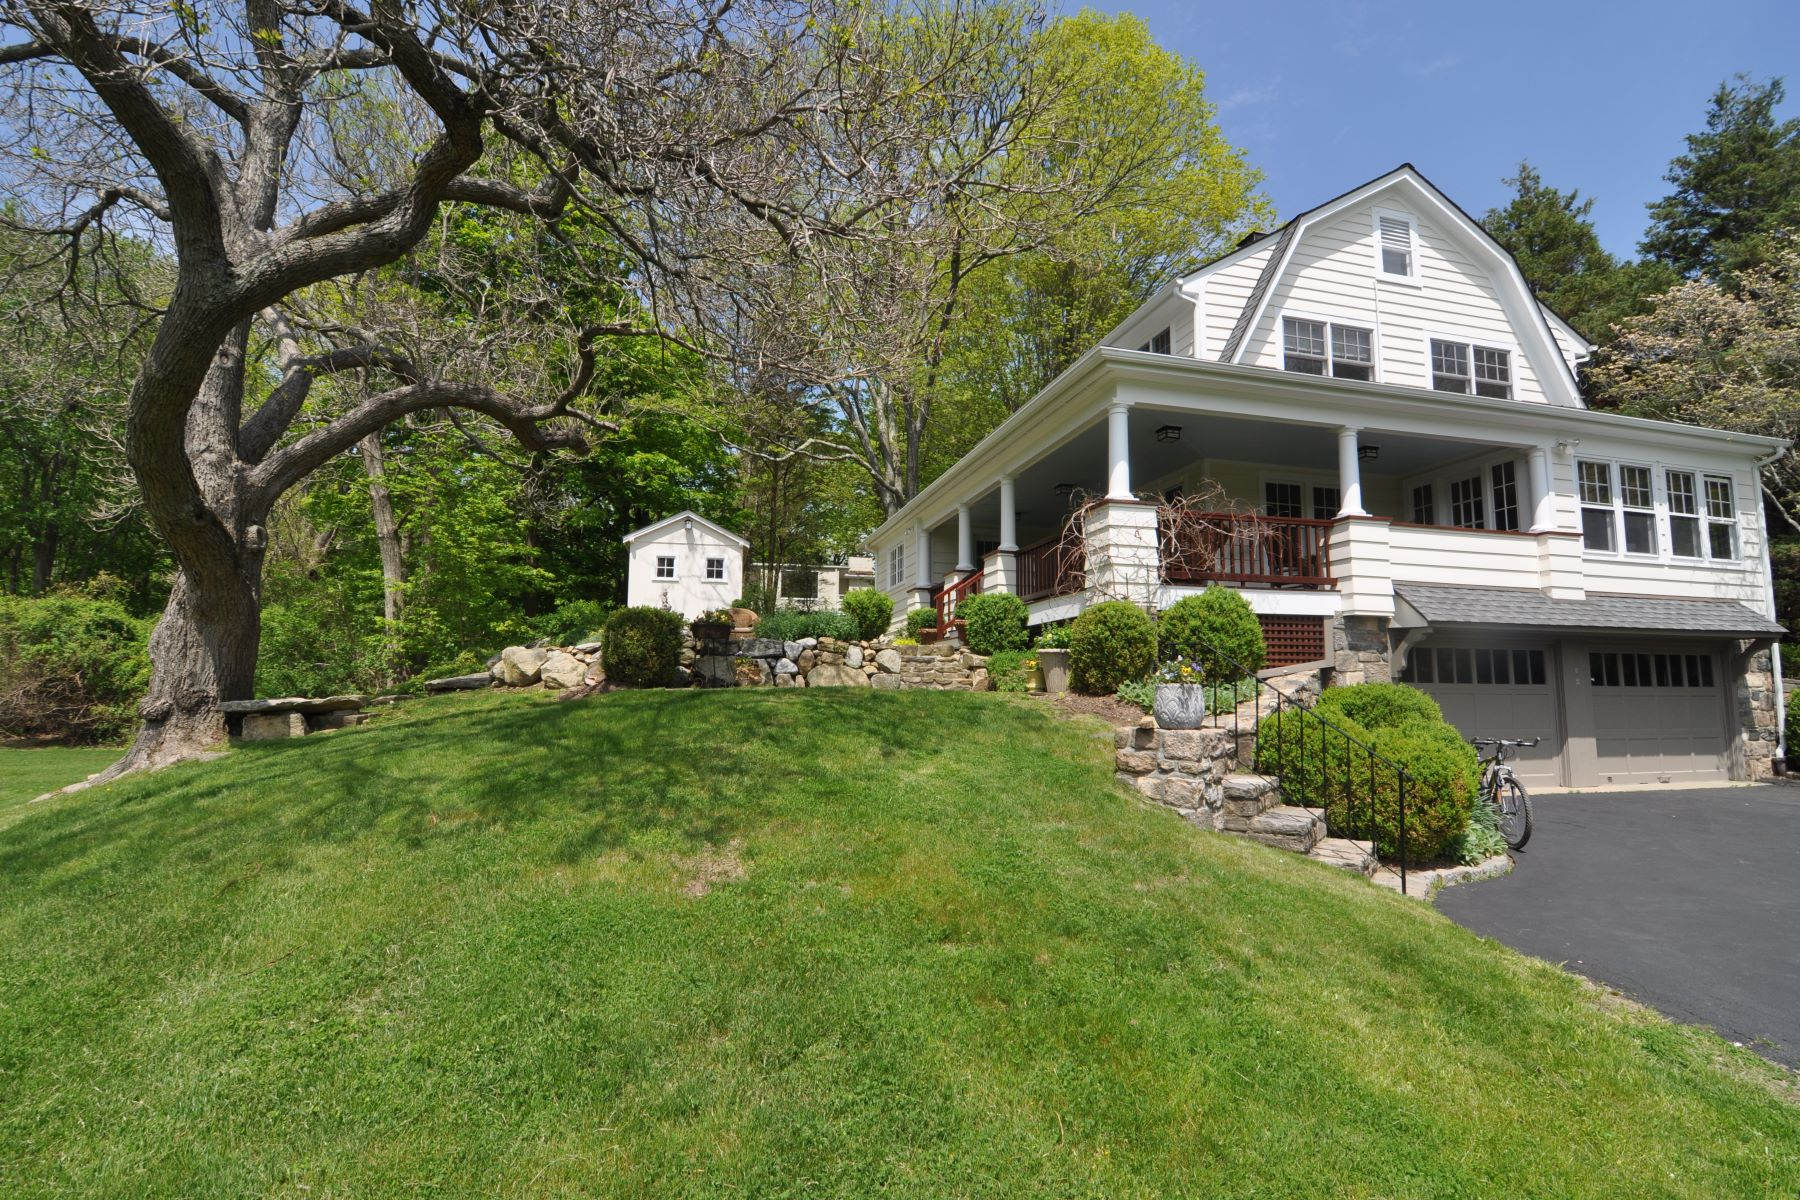 Single Family Homes for Sale at 100 Salem Road Pound Ridge, New York 10576 United States